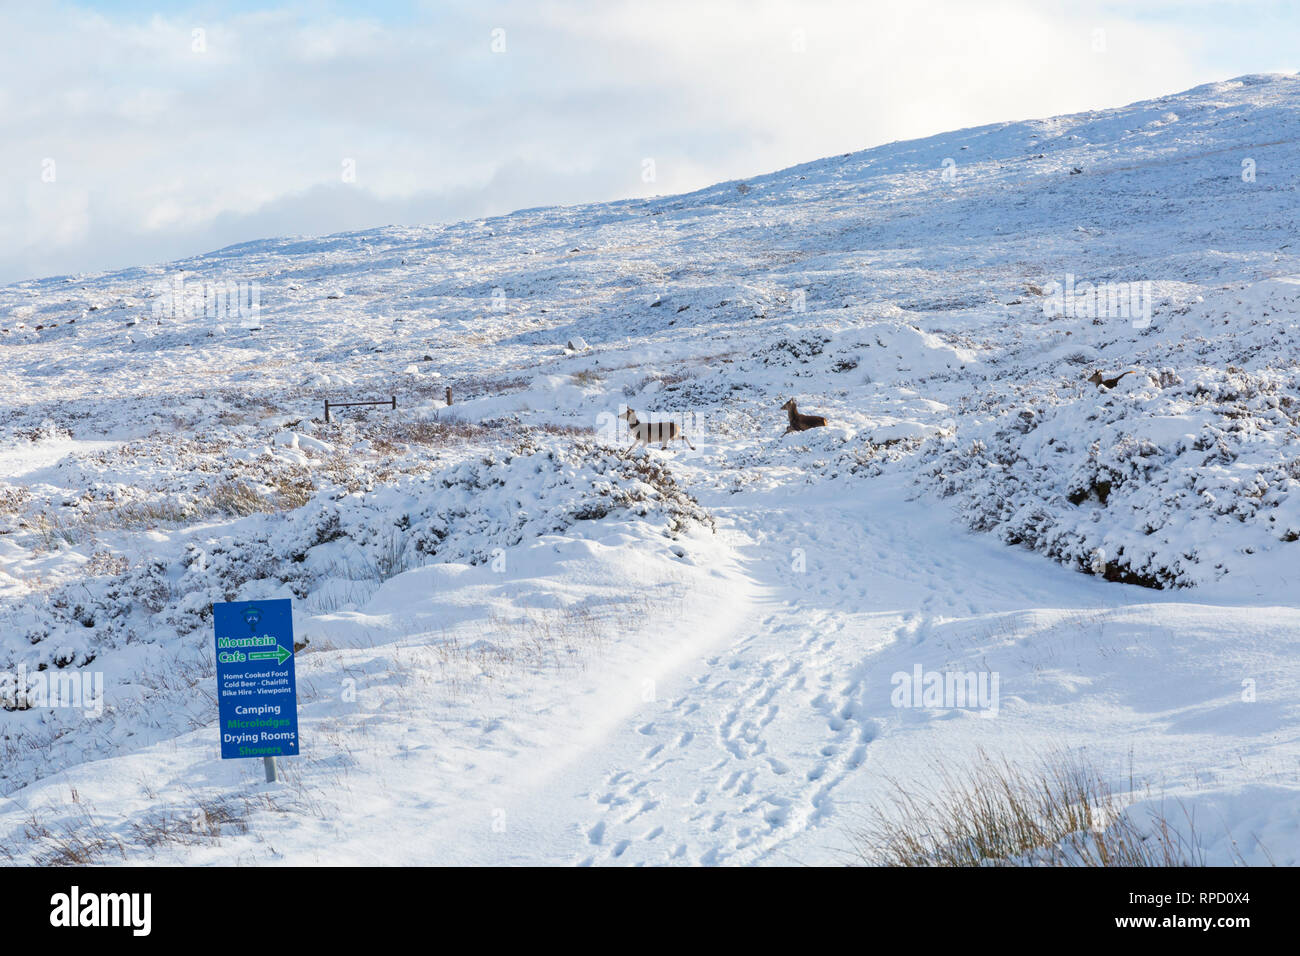 Cold winter day with deer running through snow at Rannoch Moor, Glencoe, Scottish Highlands, Scotland, UK in January - Stock Image